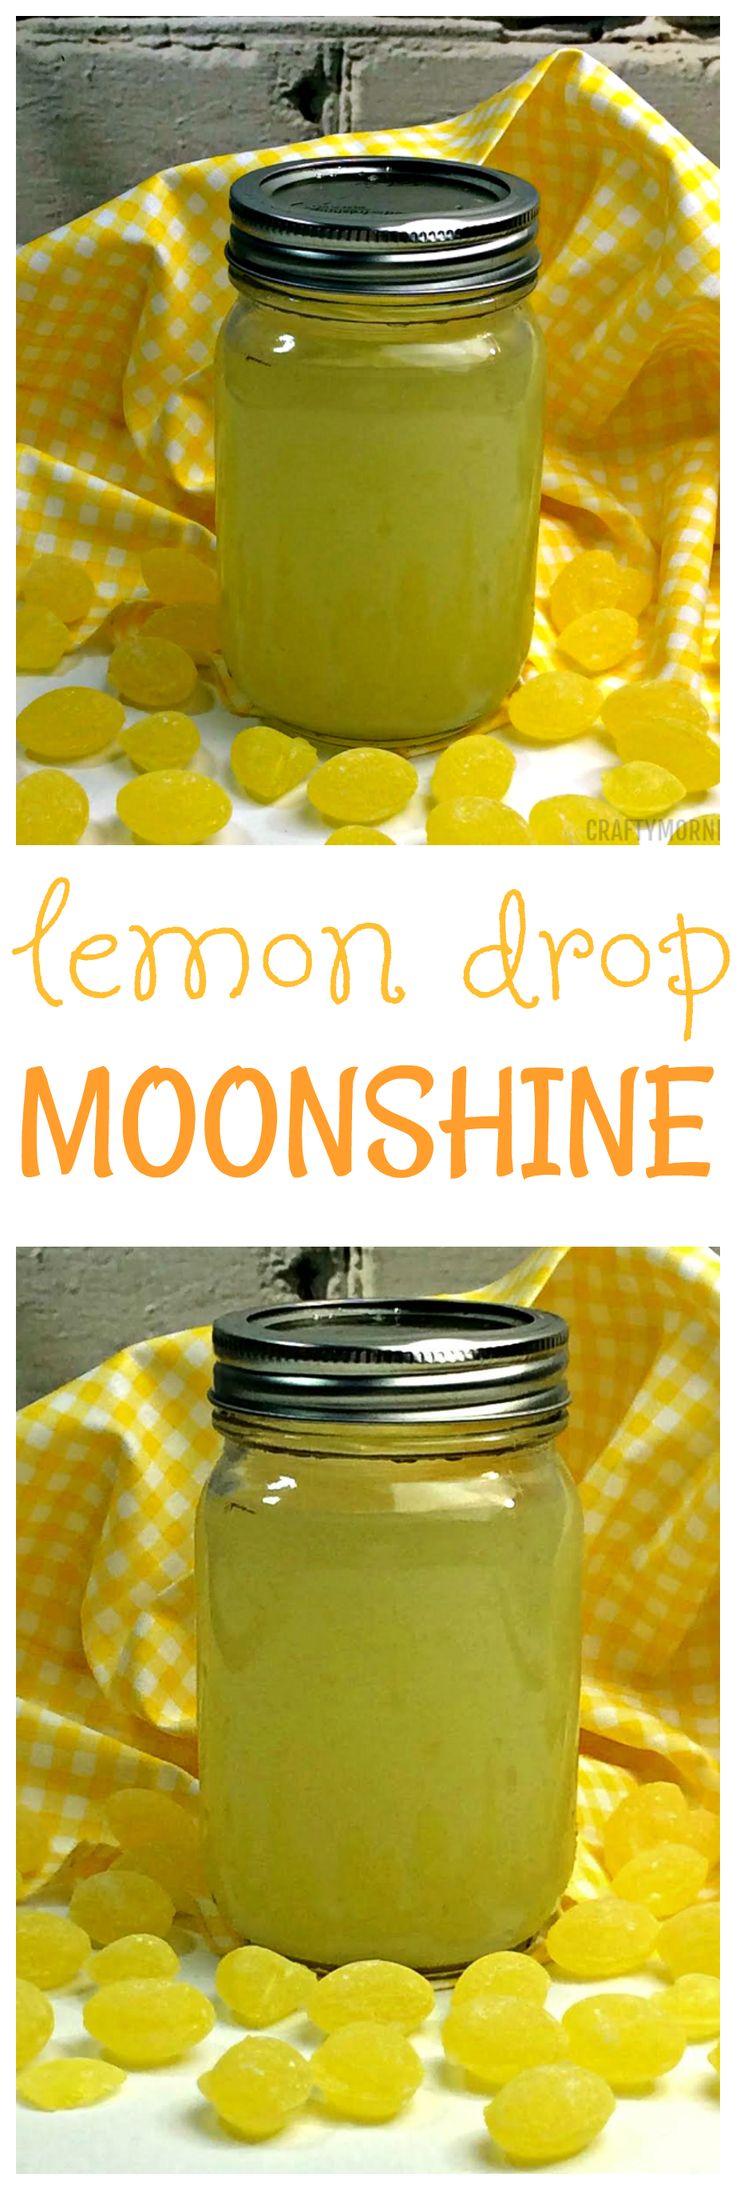 Lemon drop moonshine recipe...so good for summer BBQs!